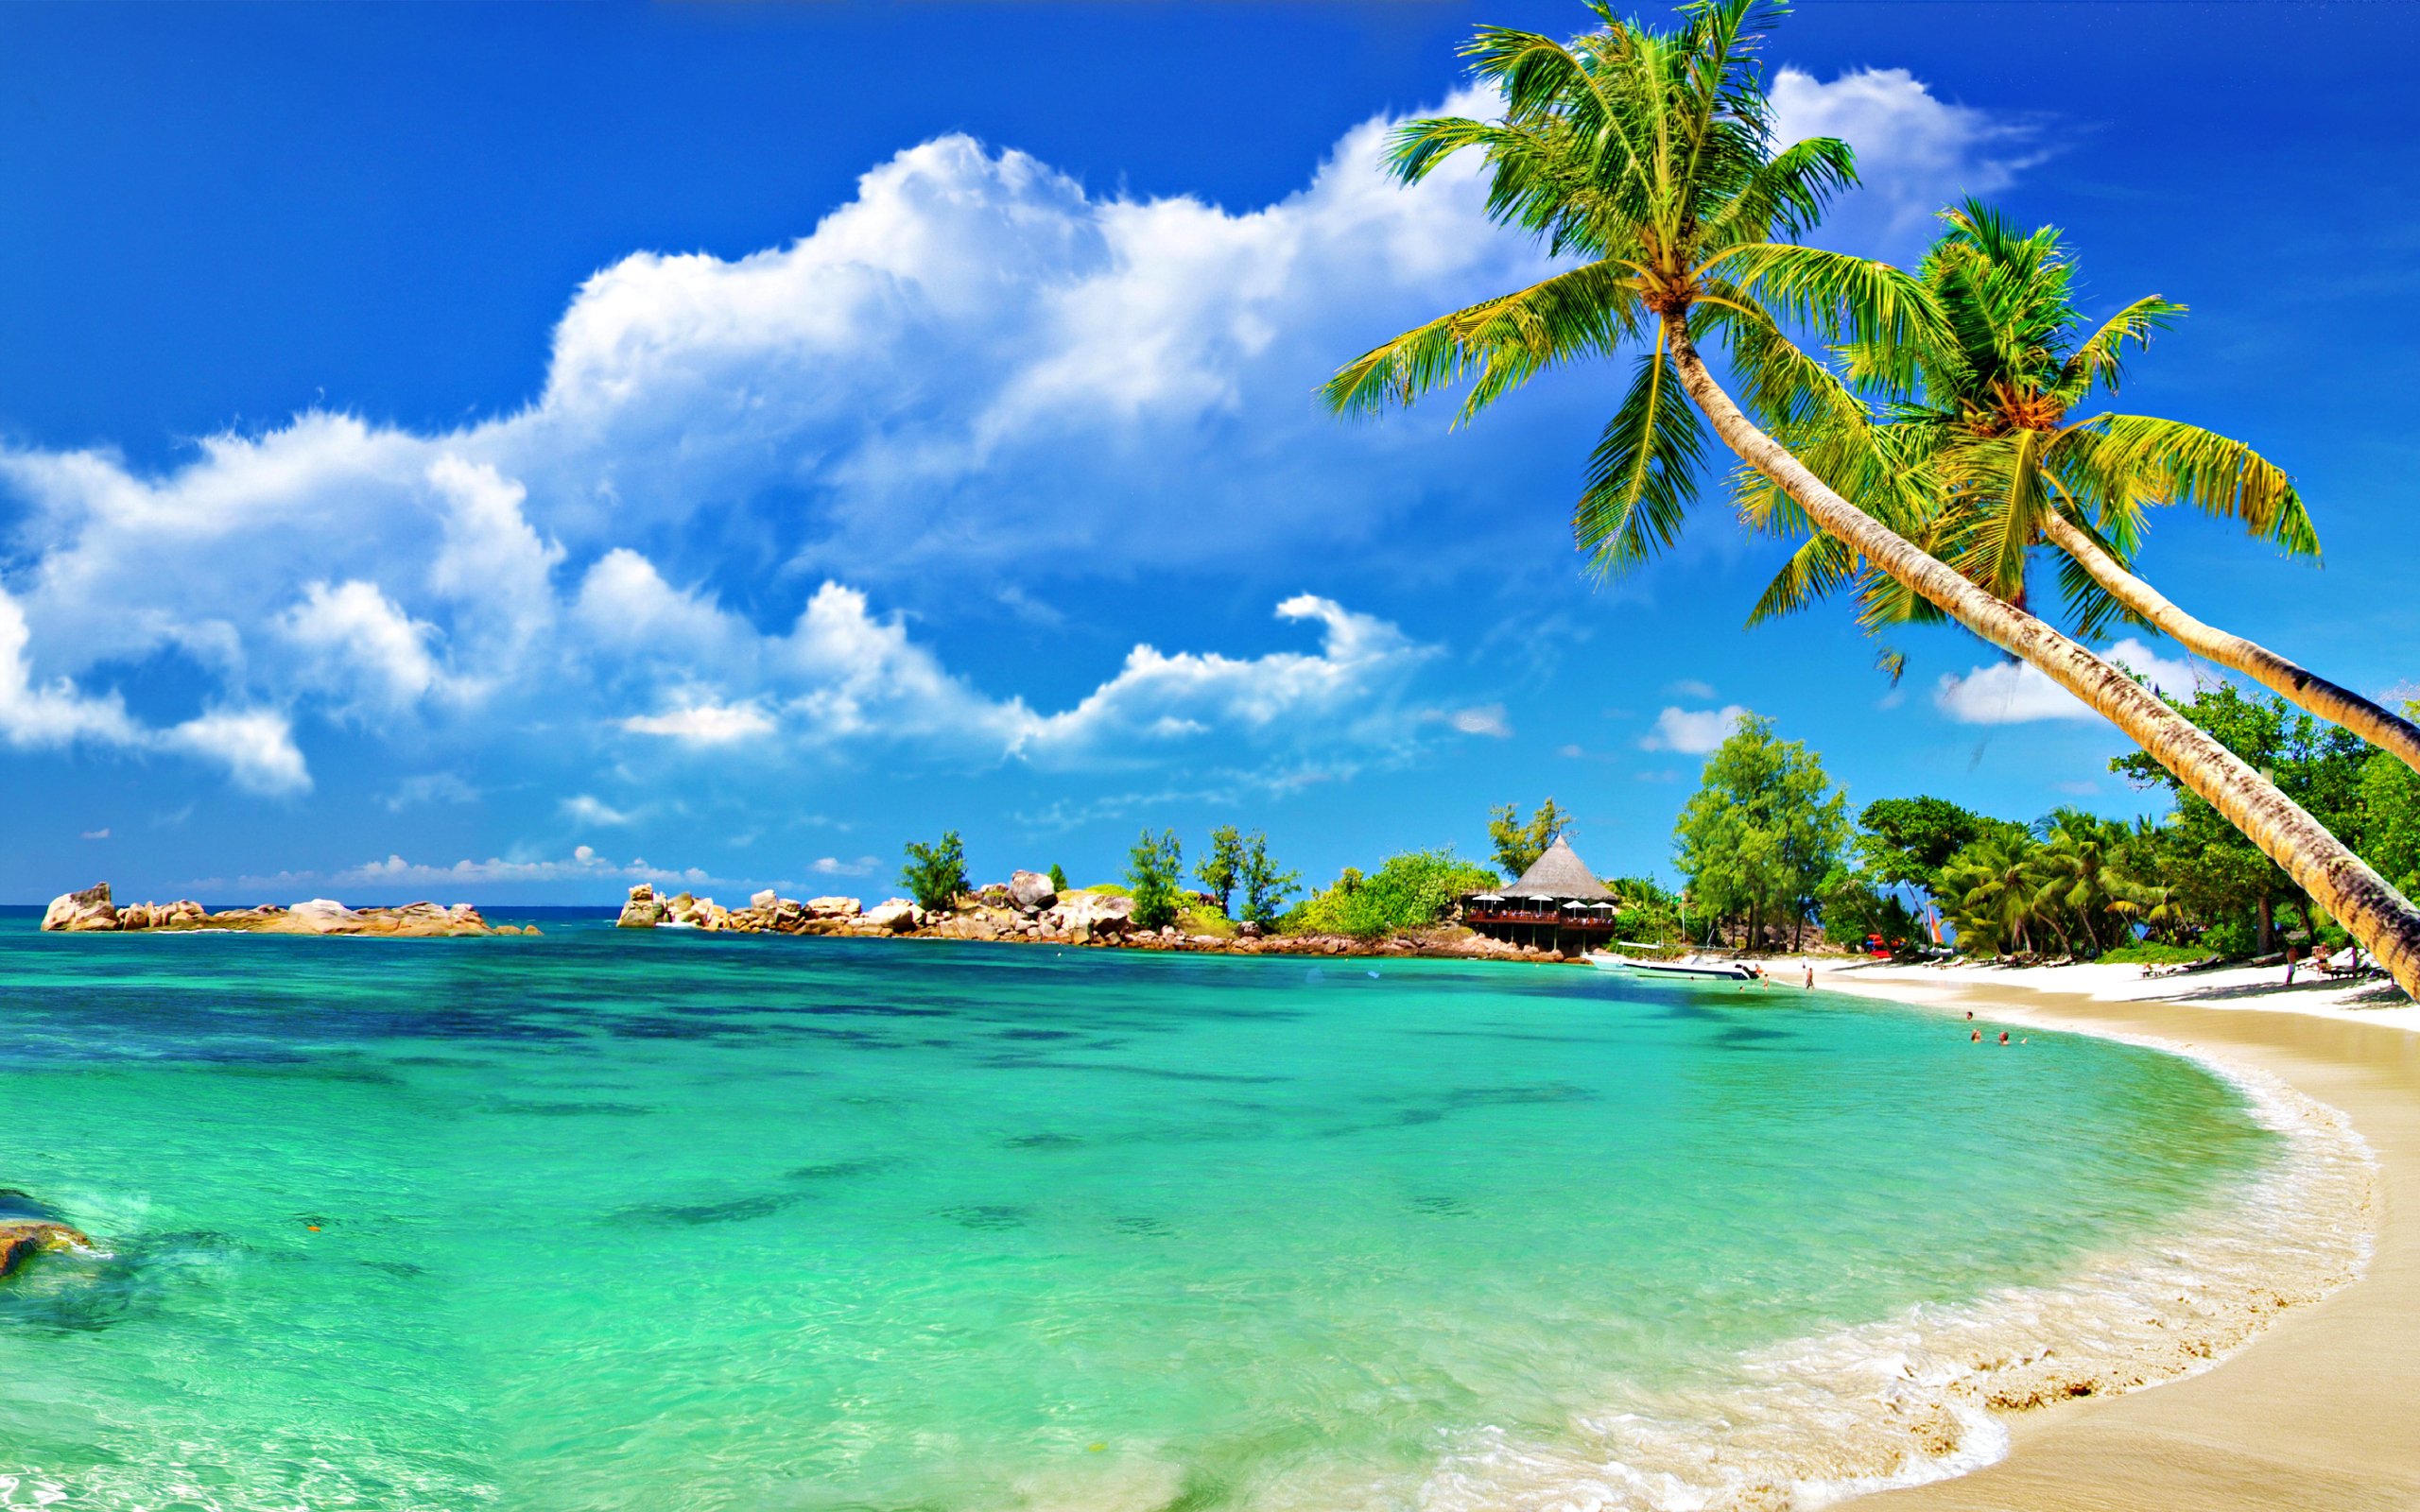 Best Tropical Beach Wallpaper Wallpaper WallpaperLepi 2560x1600